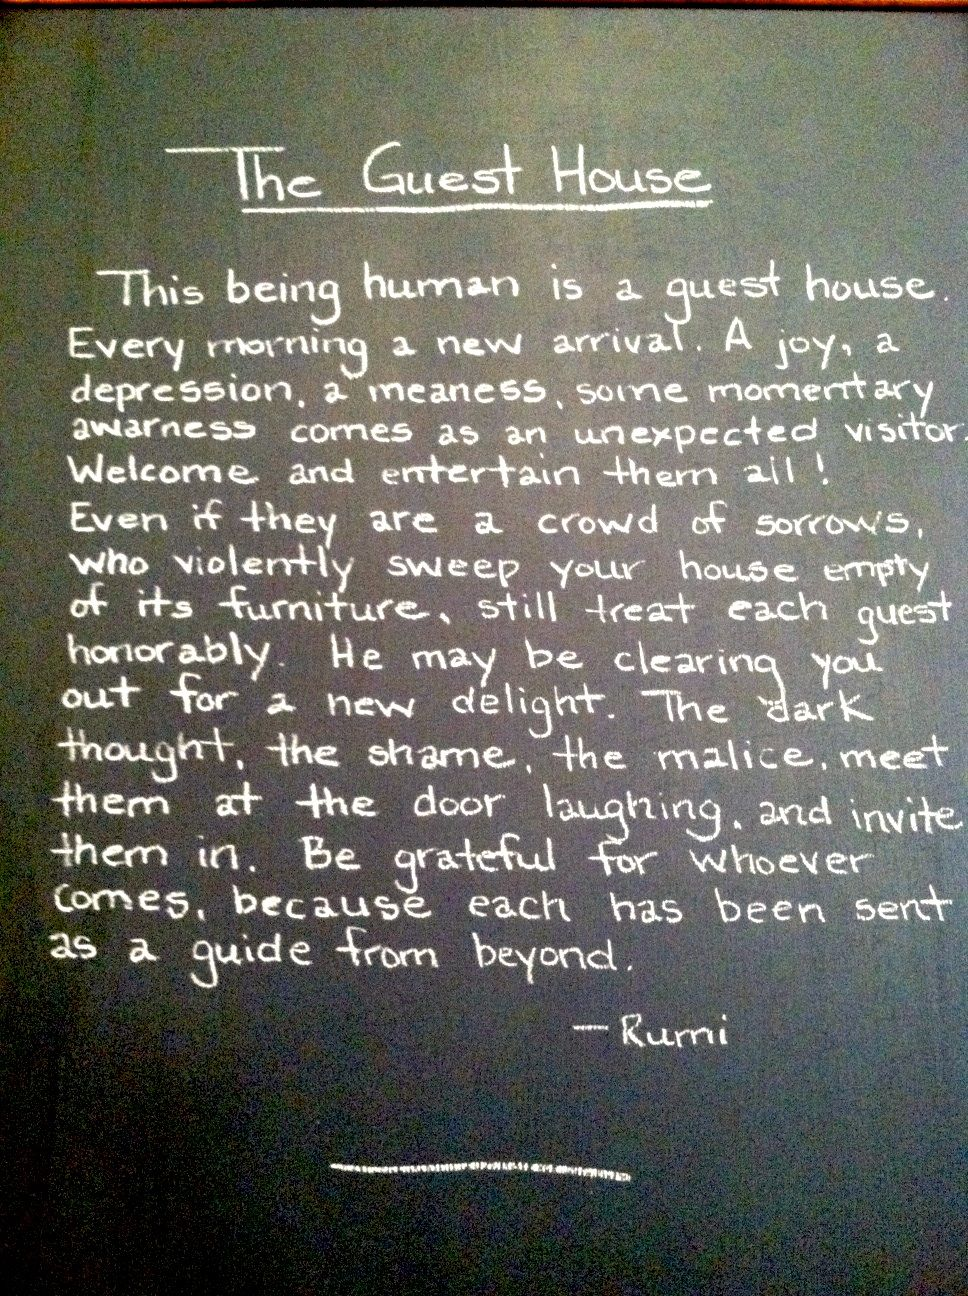 The guest house aparigraha negative emotions rumi quote